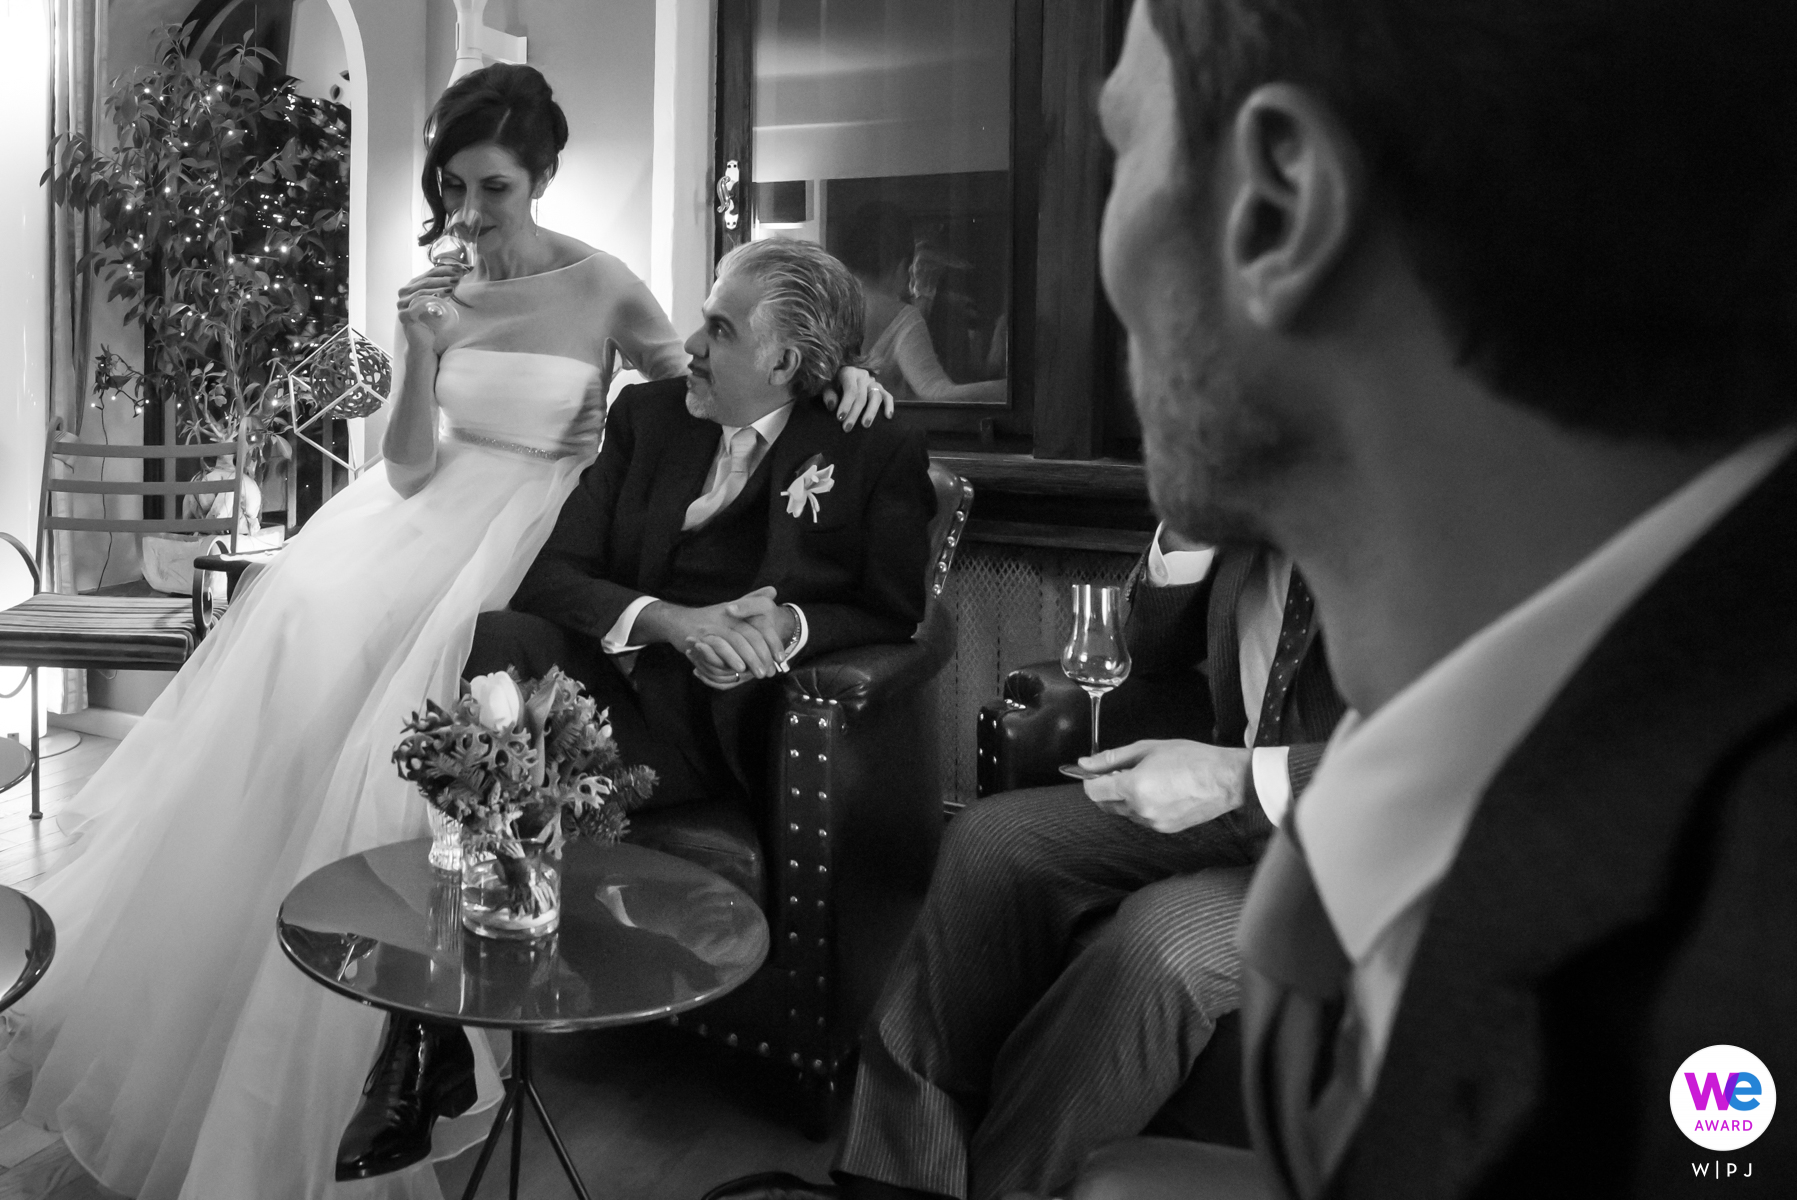 Restaurant Dal Pescatore - Mantua, Italy Elopement Photography | The spouses and friends reach a sitting area in the room